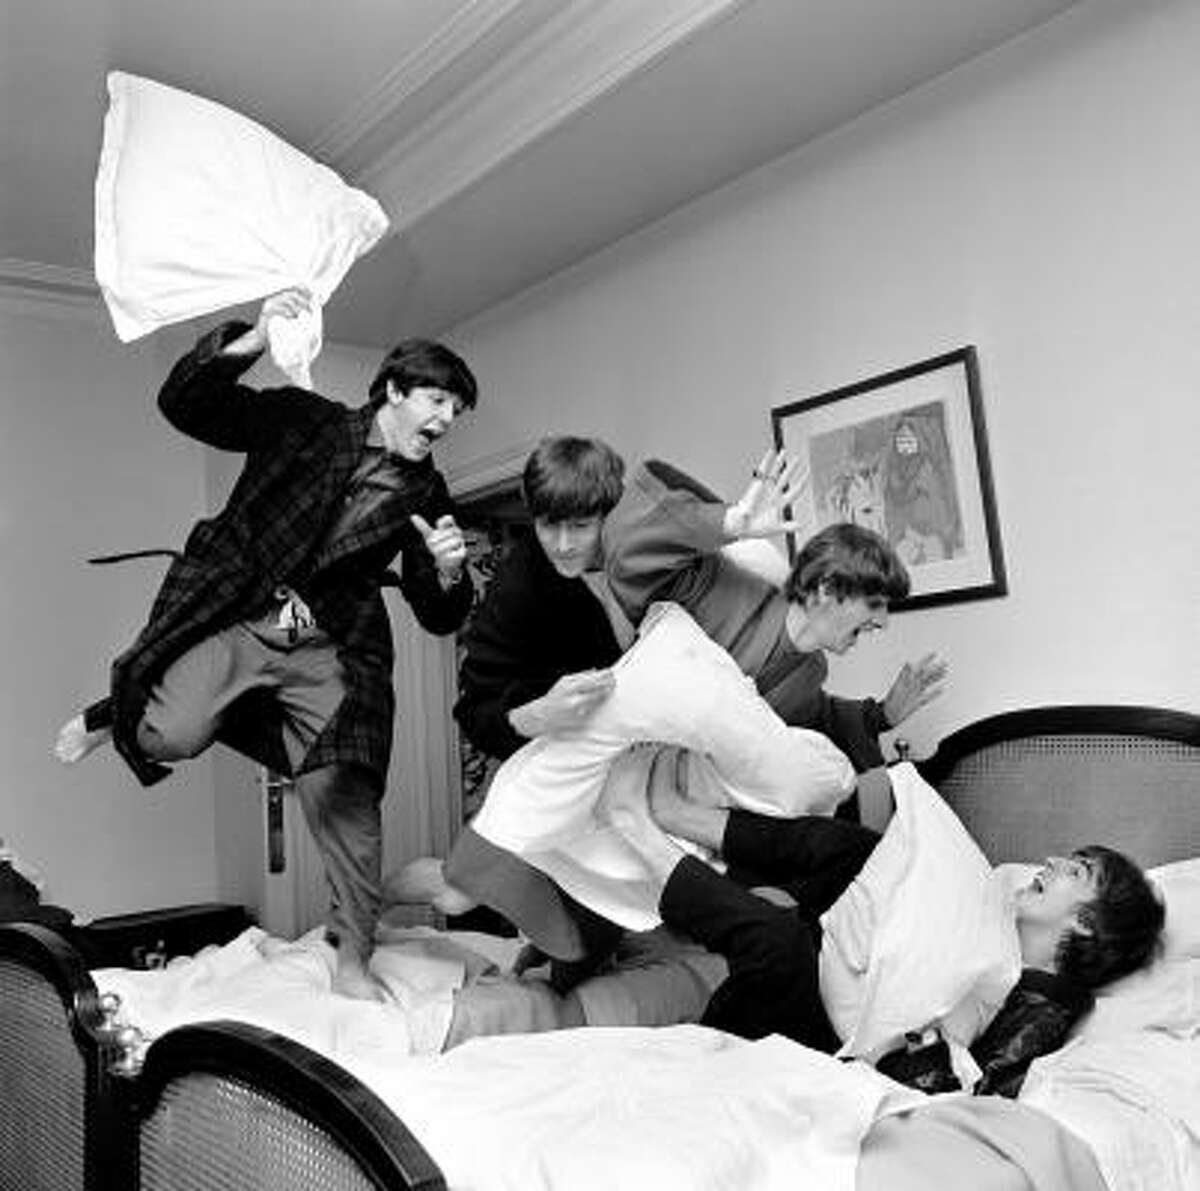 The Beatles: Some say they are the original teen heartthrobs. In their younger years, girls went crazy over them. Mobs of crazed teenagers would chase them after concerts just to get a little glimpse of the Fab Four.